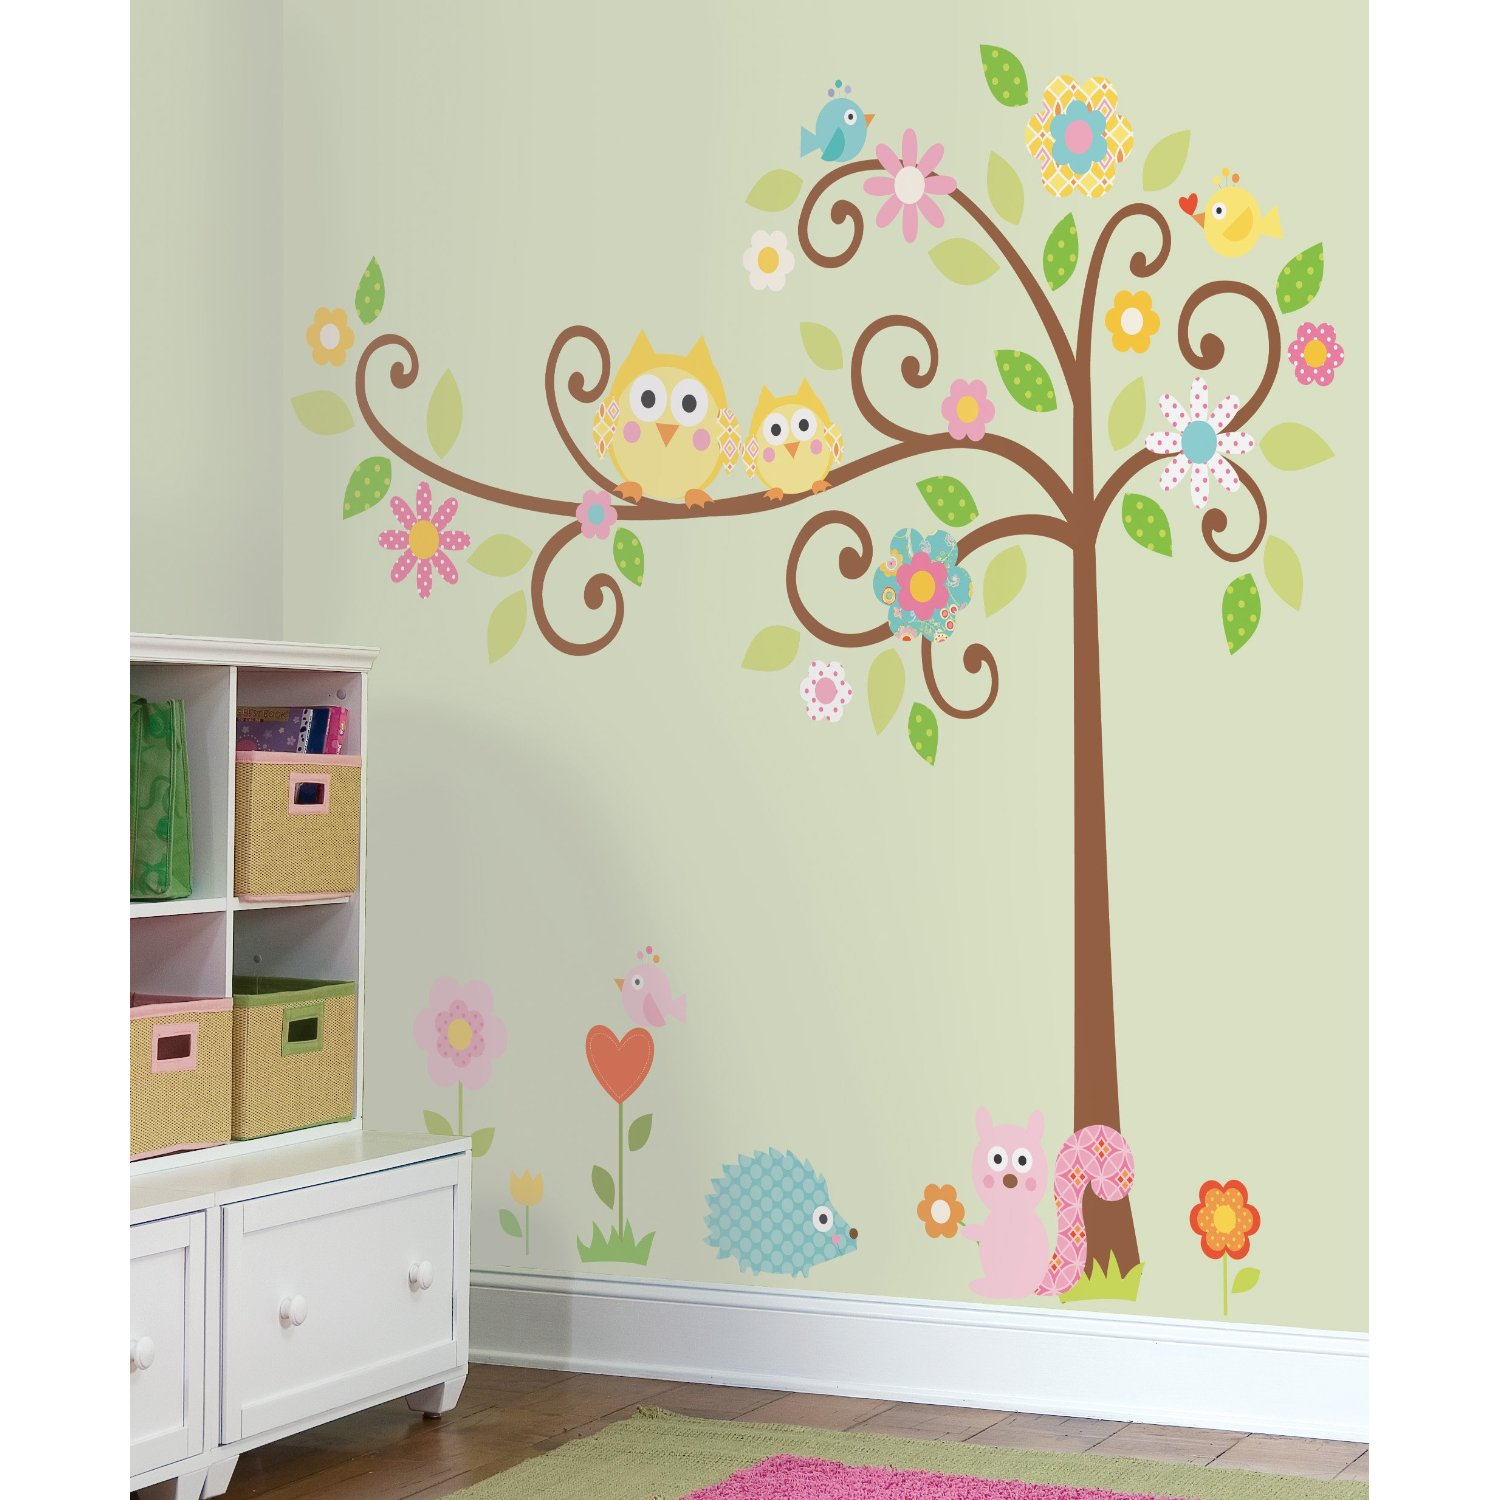 Beautiful Room mates tree wall decal